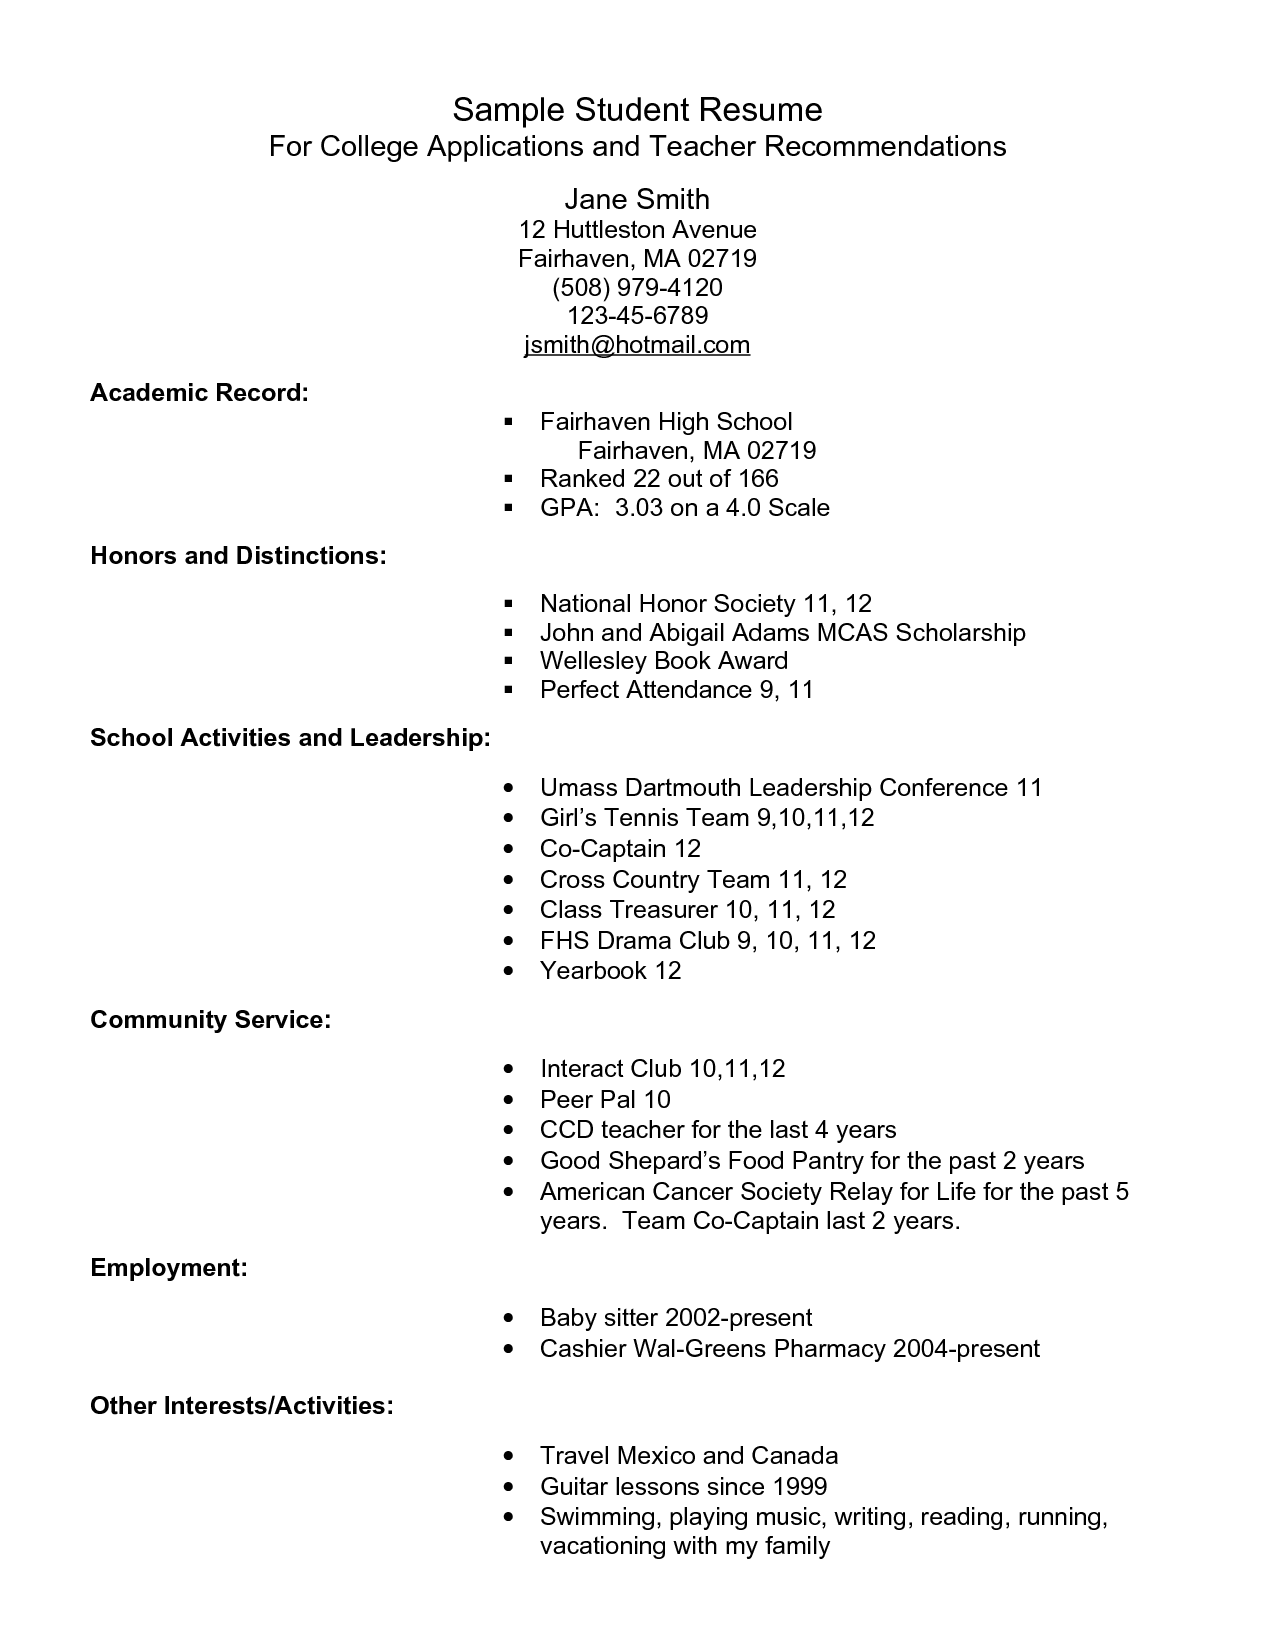 College Admission Resume Template | Sample Student Resume - PDF ...